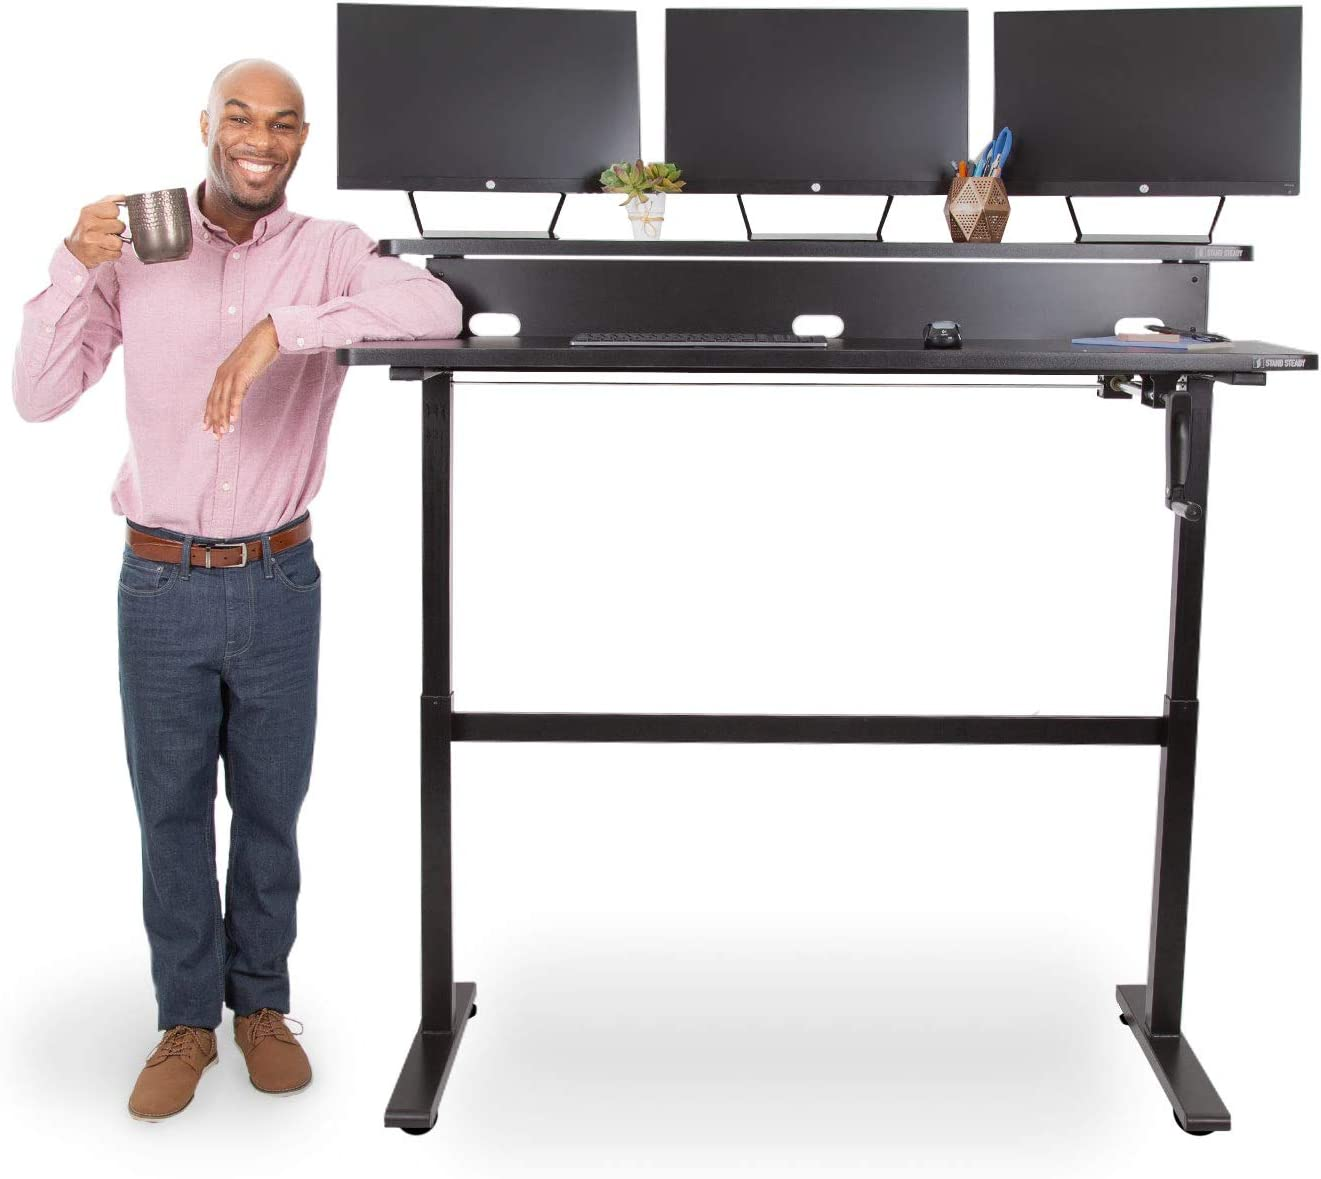 Stand SteadyTranzendesk| 55 Inch Dual Level best Standing Desk for tall people